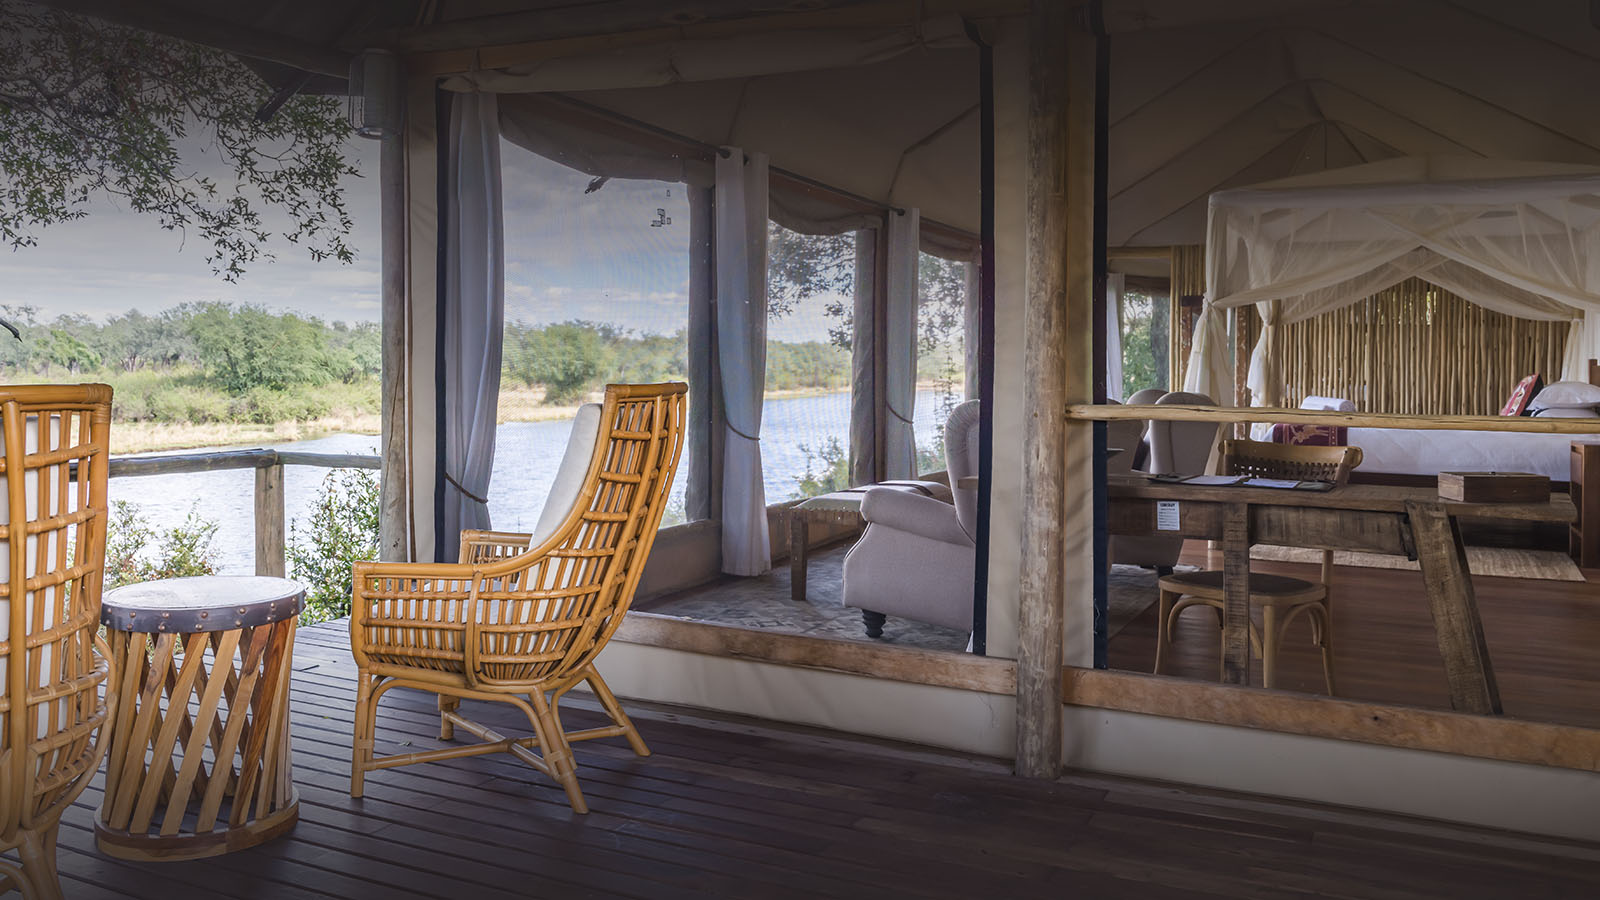 amanzi-lodge-zambia-in-style-safari-packages-lodges-lower-zambezi-rustic-intimate-safari-deck-chairs